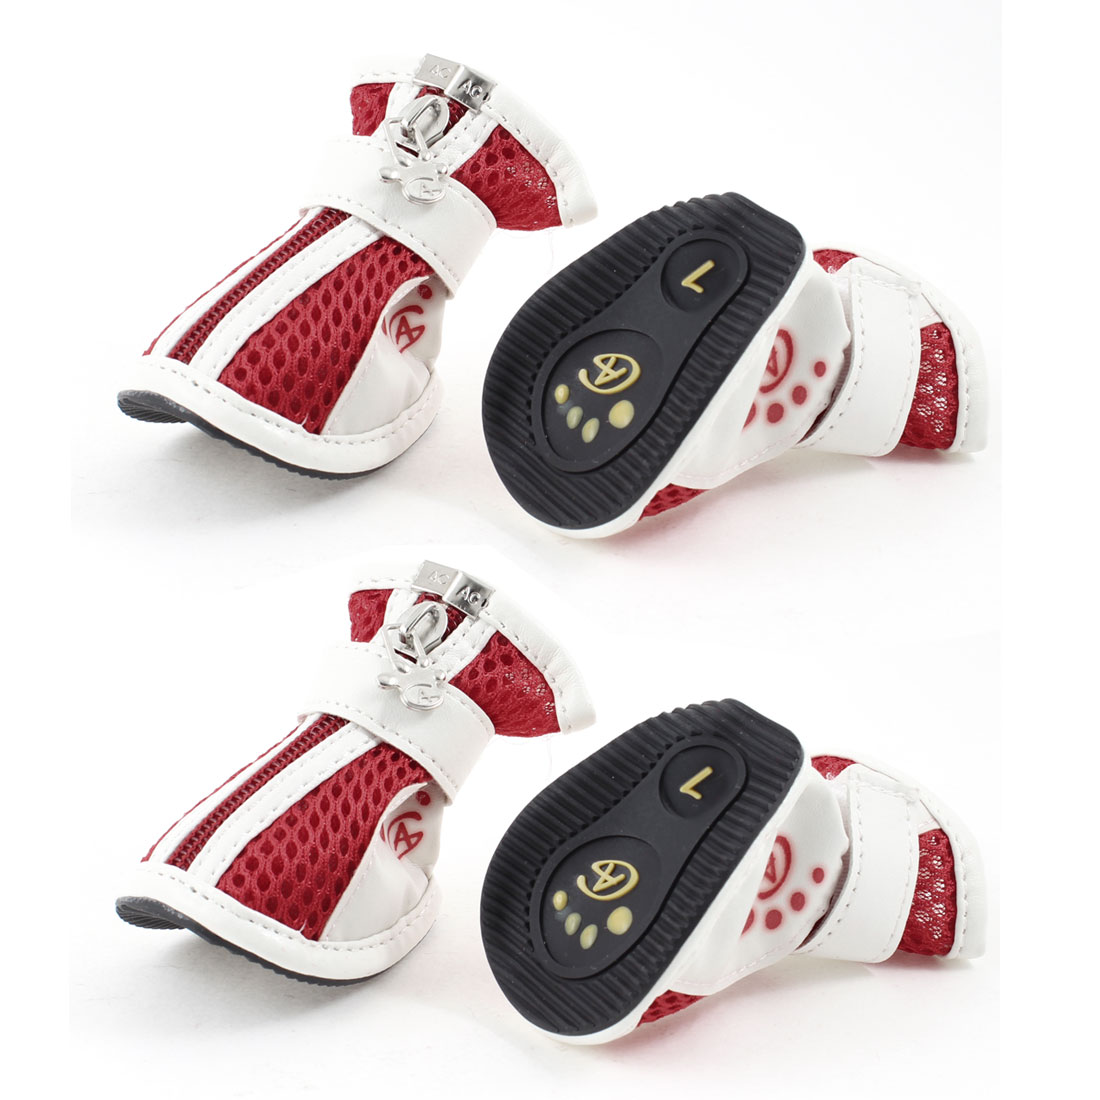 Pet Dog Yorkie Chihuaha Zipper Closure White Red Meshy Shoes 4 Pcs Size 1